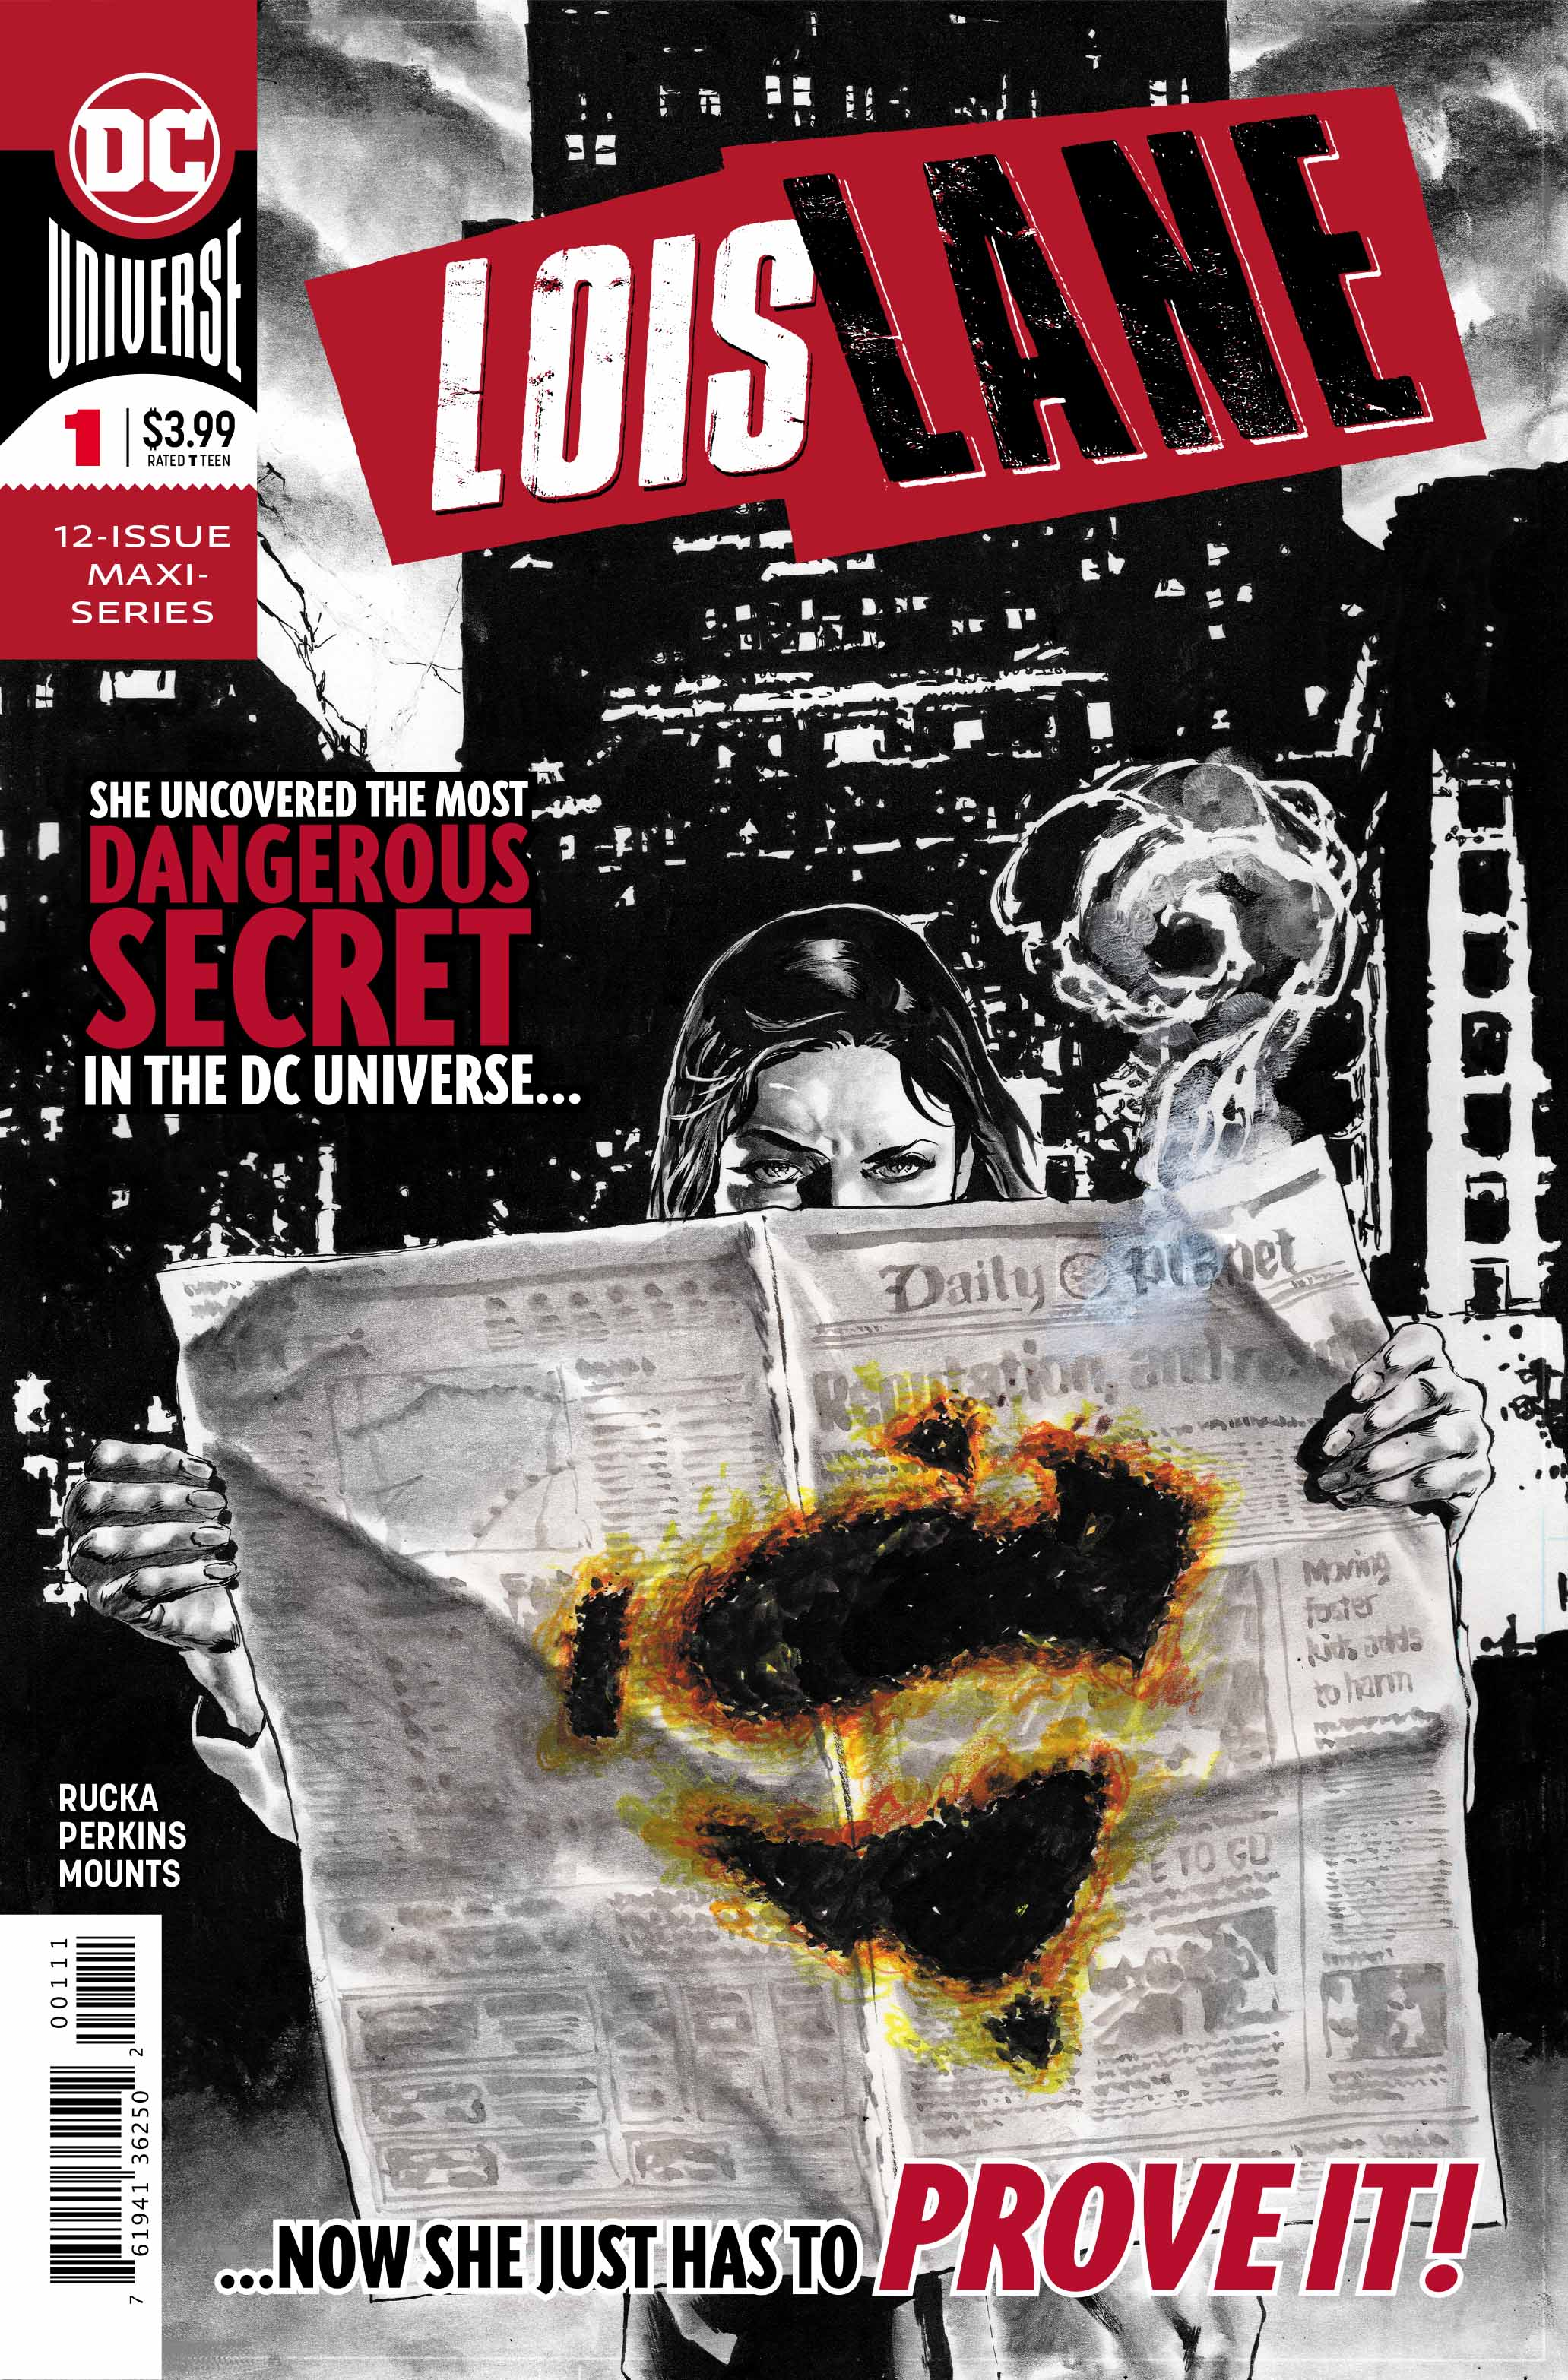 Lois Lane #1 review: the real world